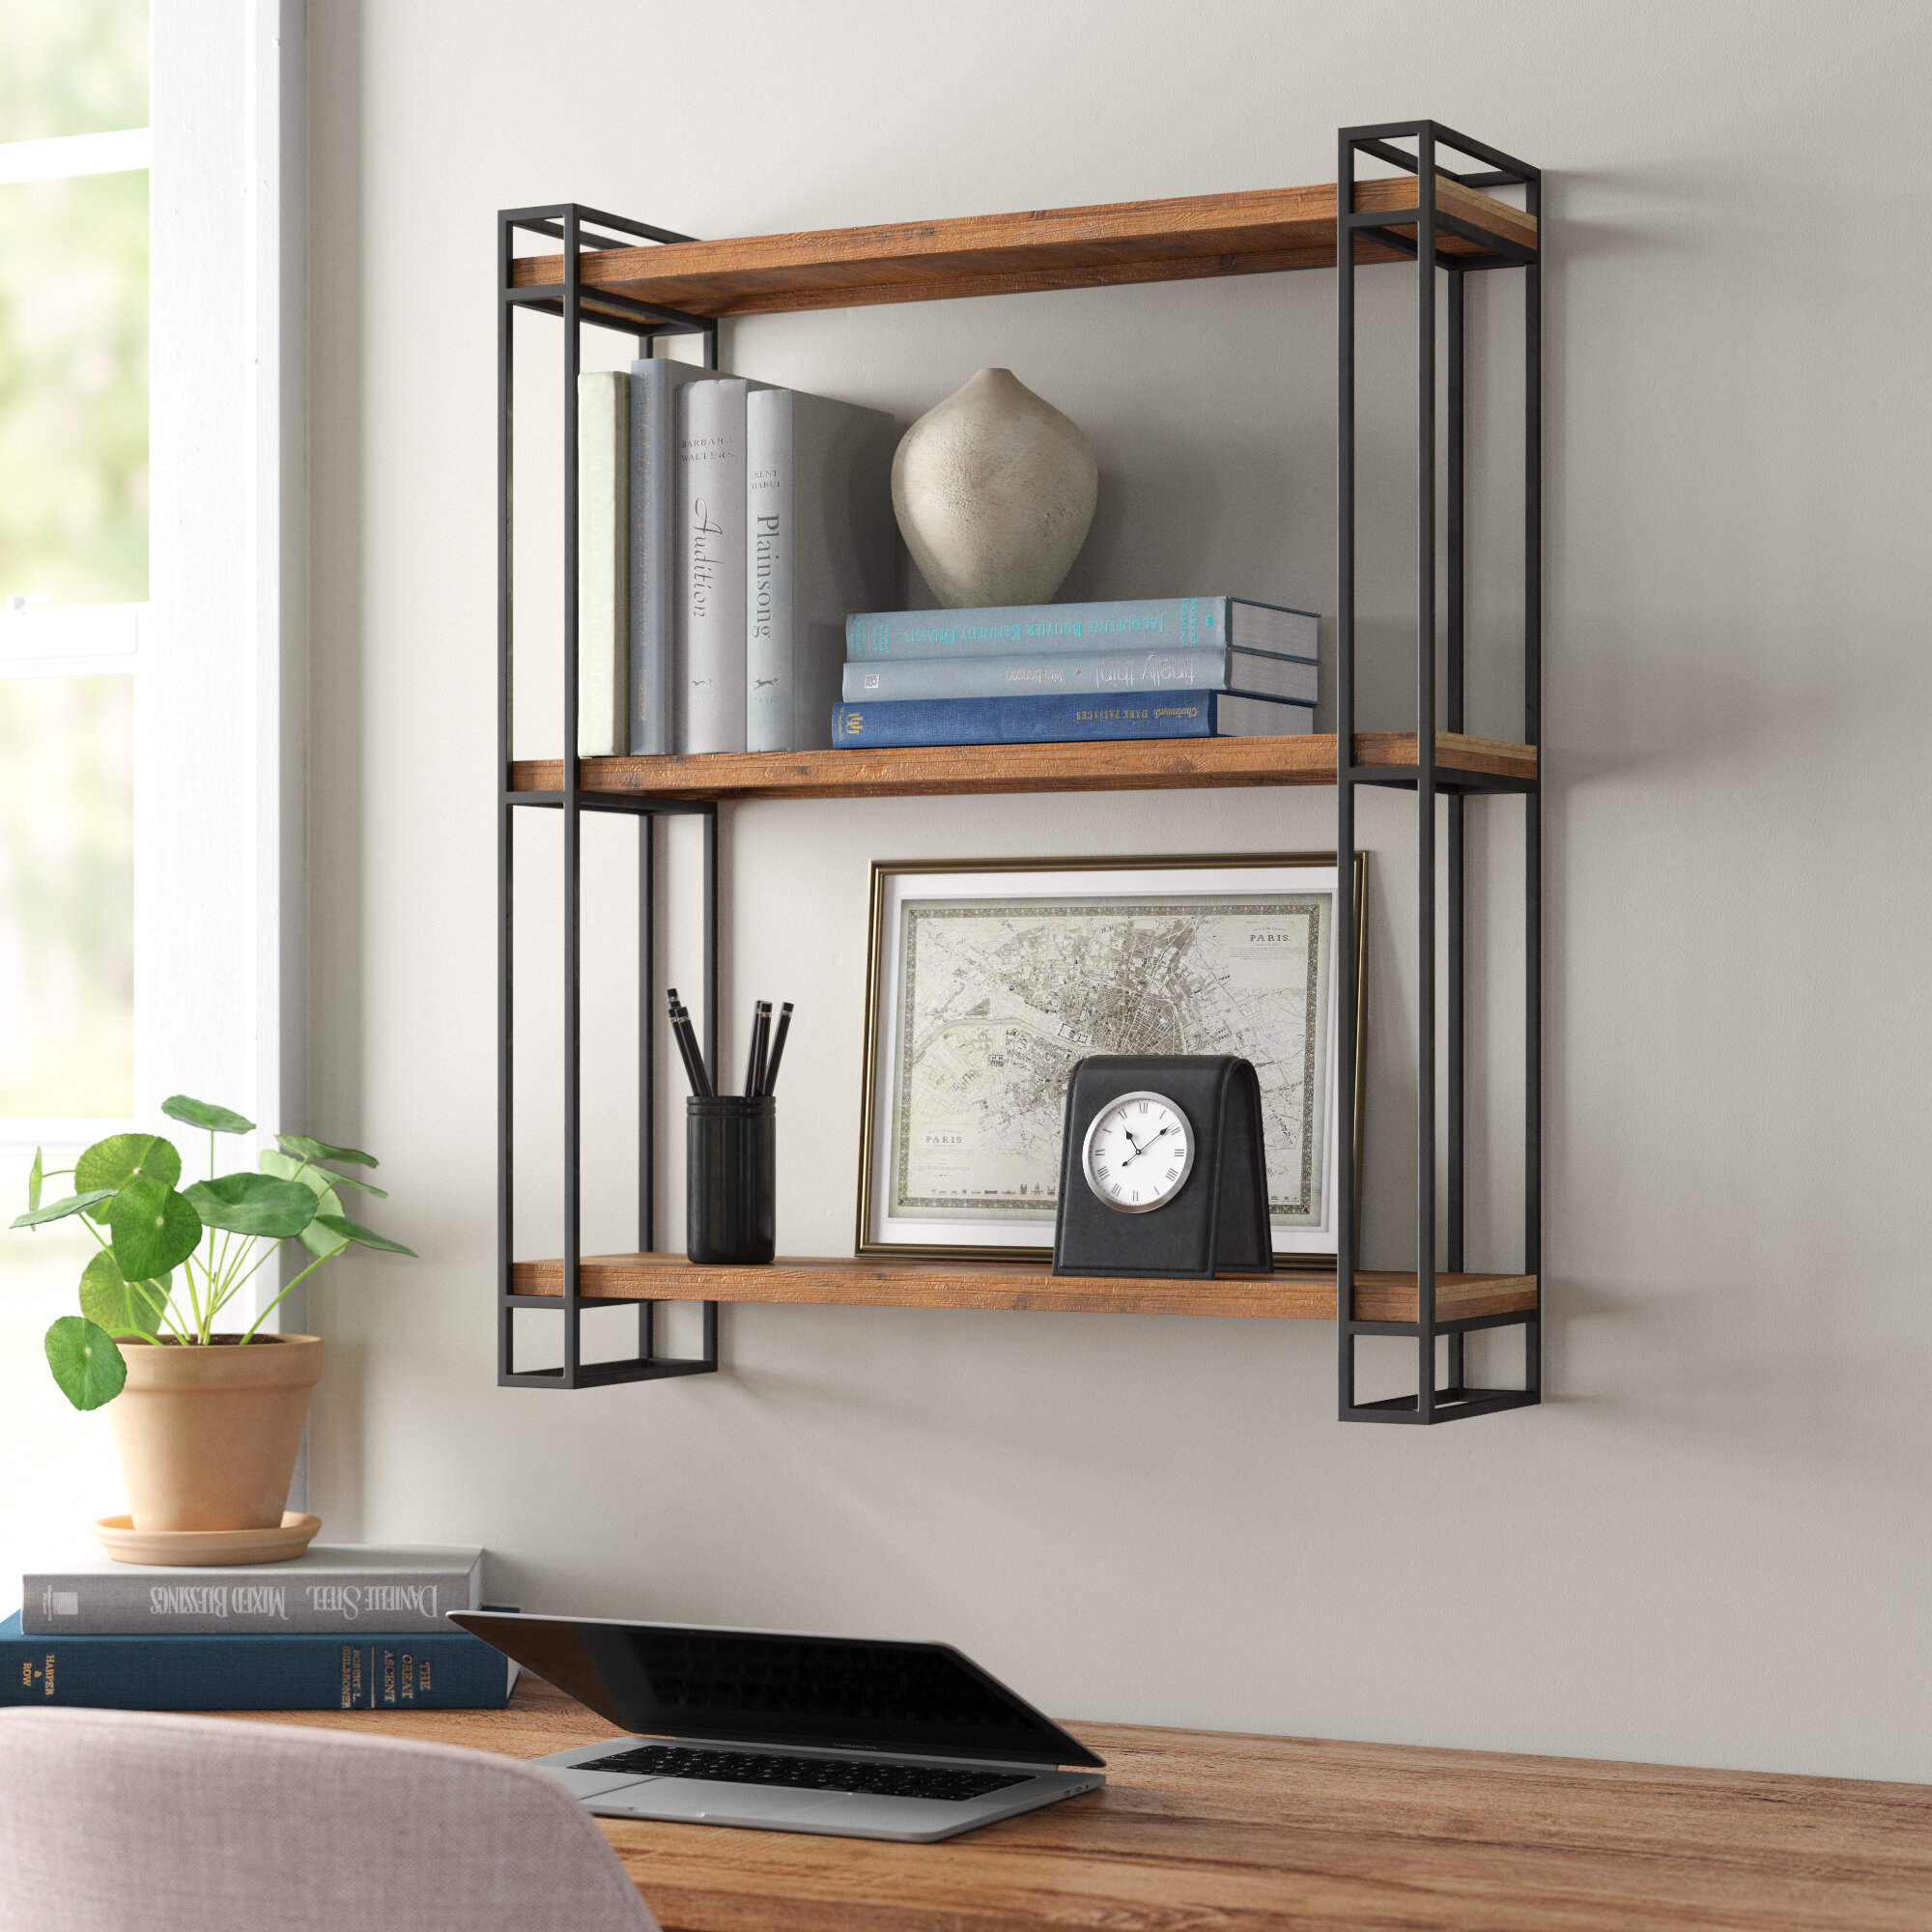 Afuly Black Wall Shelf Metal Floating Shelves Heart Design Industrial Modern Farmhouse Style Fancy Unique Decoration For Bathroom Bedroom Home Décor Accents Home Semo Es